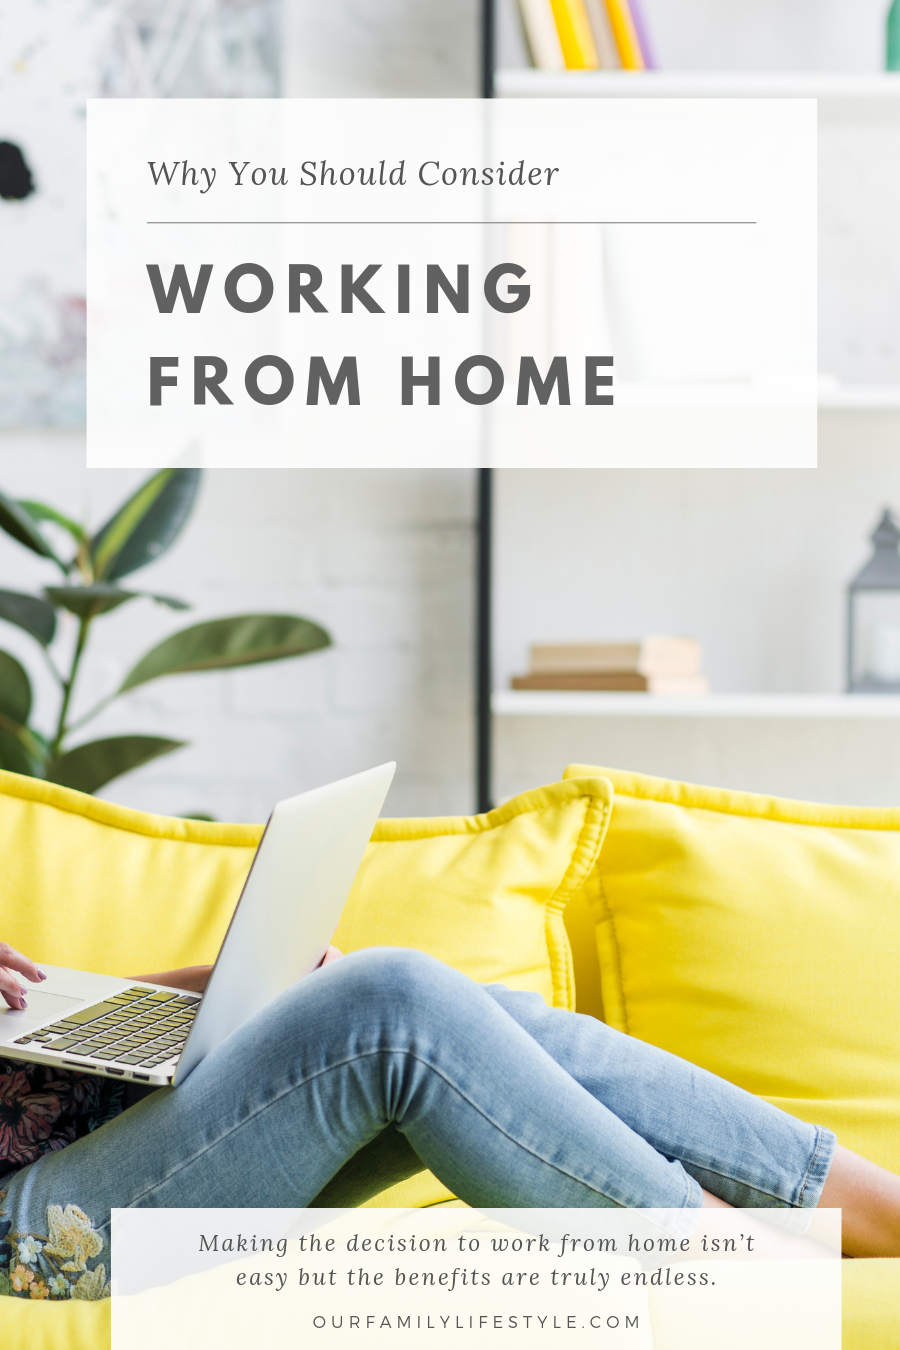 Here's Why You Should Consider Working from Home